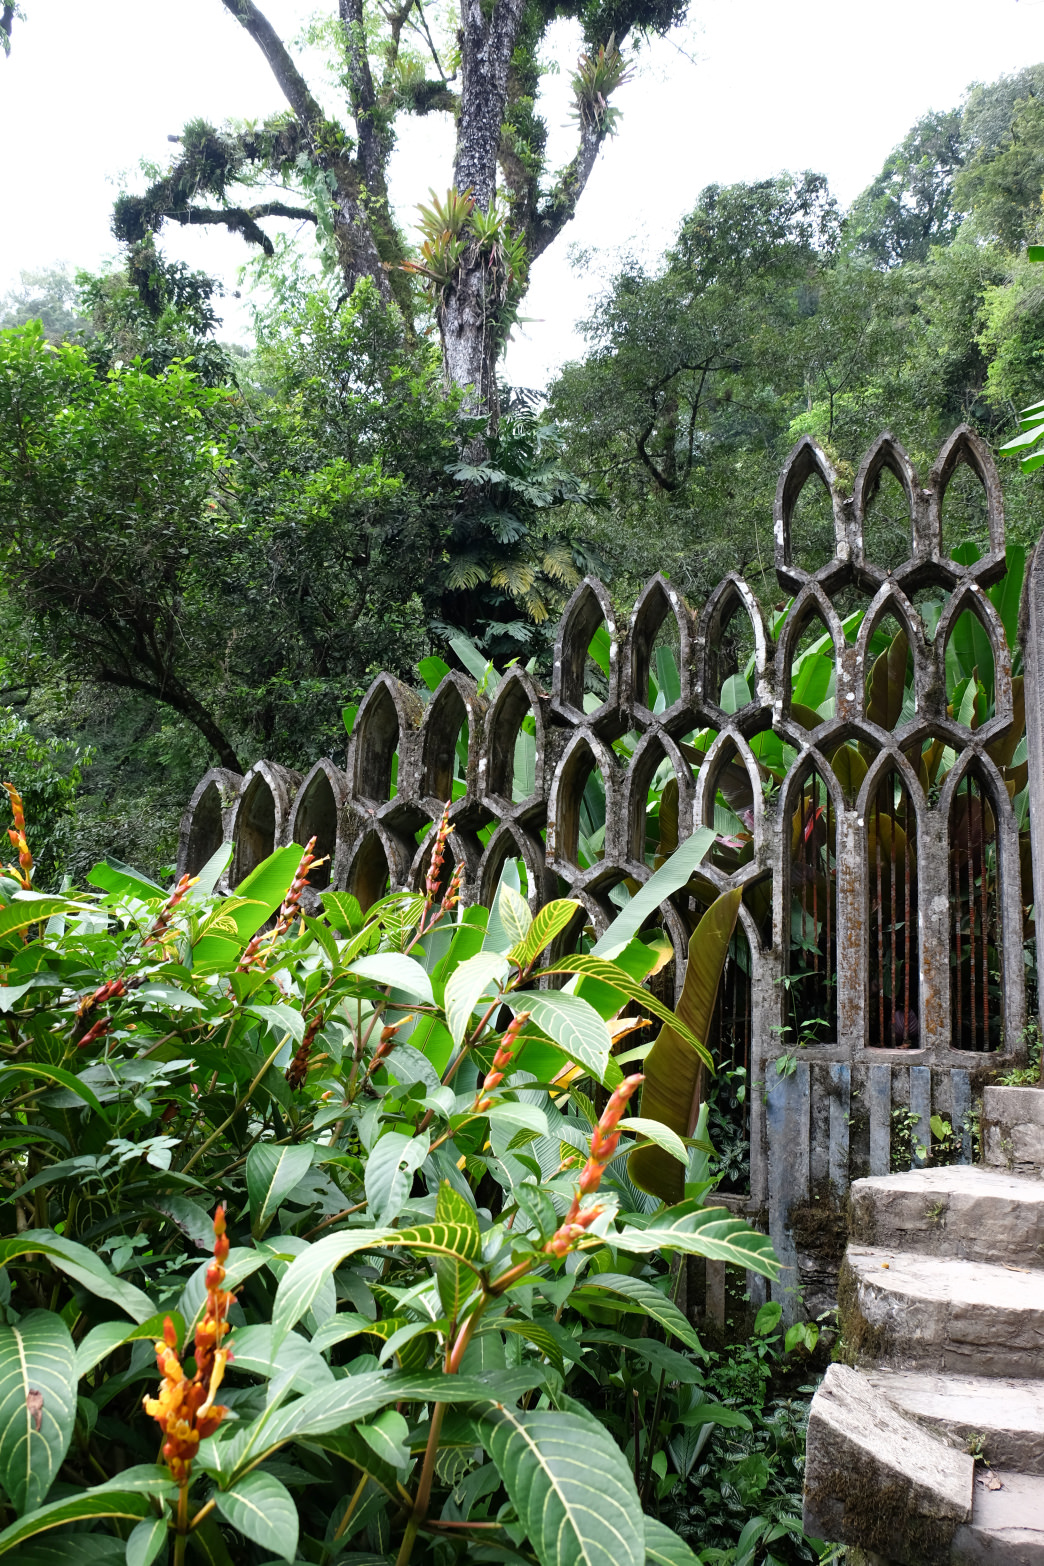 Gothic arches in the garden of Las Pozas.